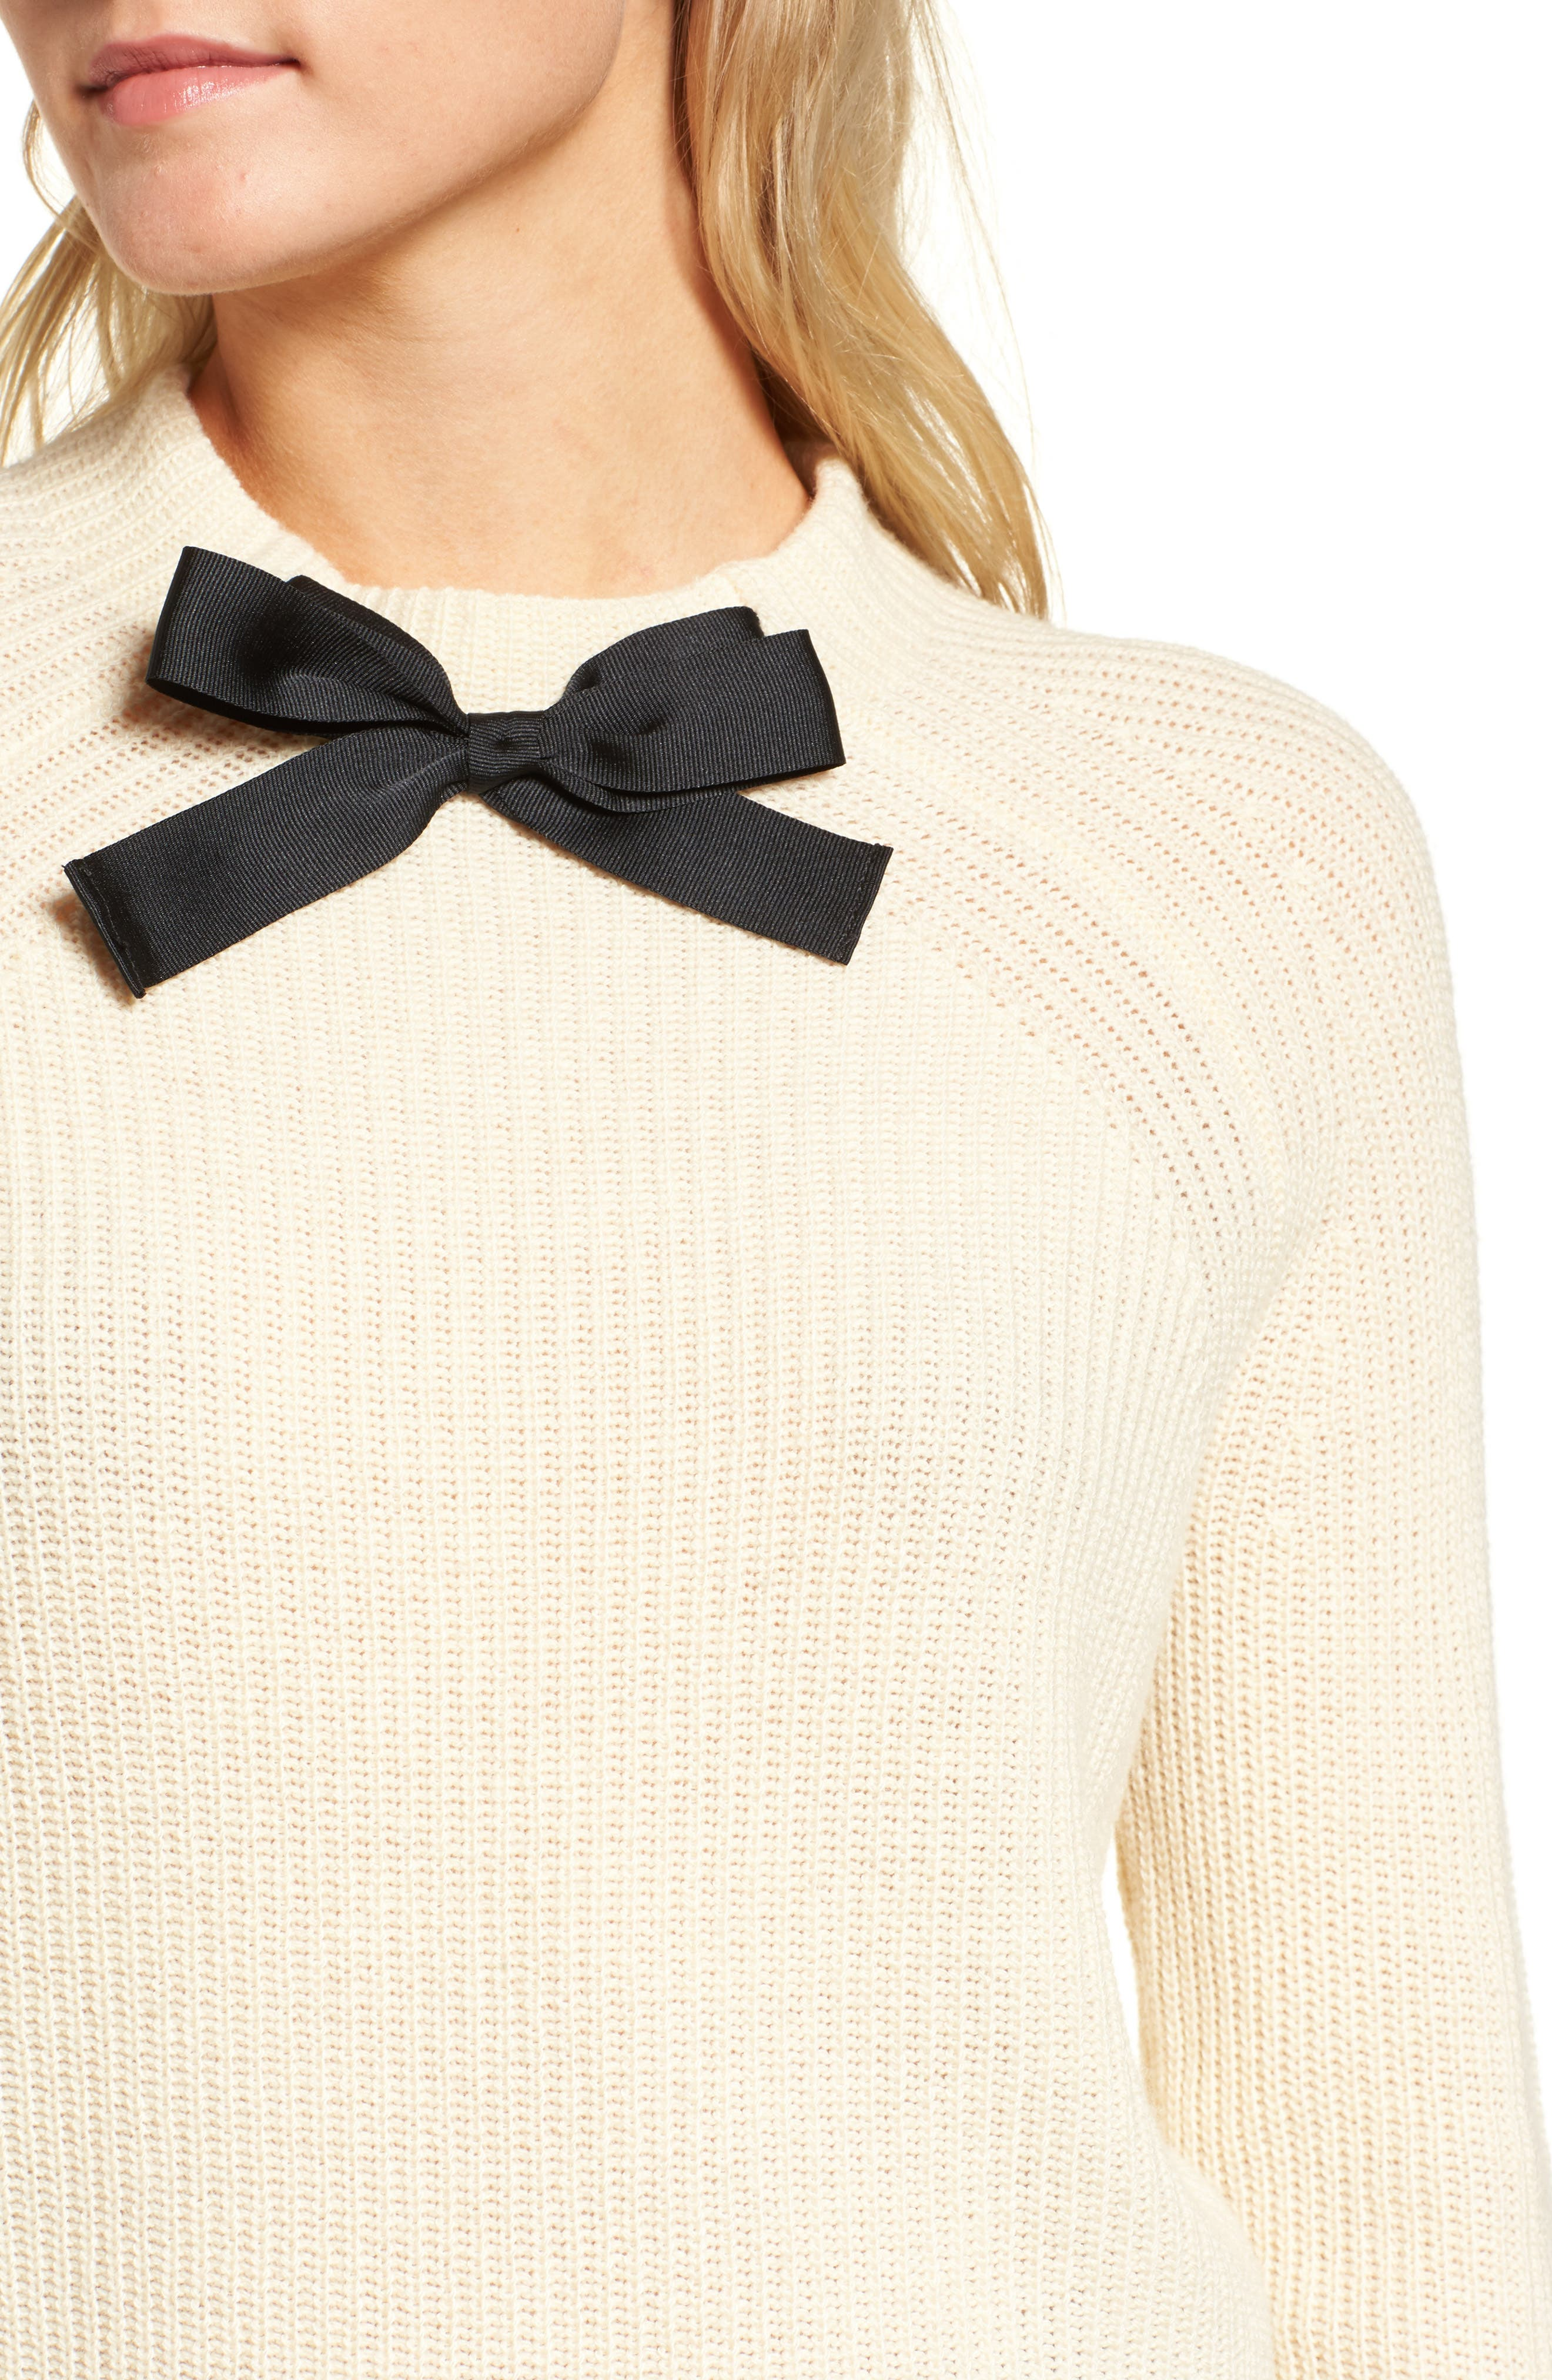 Gayle Tie Neck Sweater,                             Alternate thumbnail 11, color,